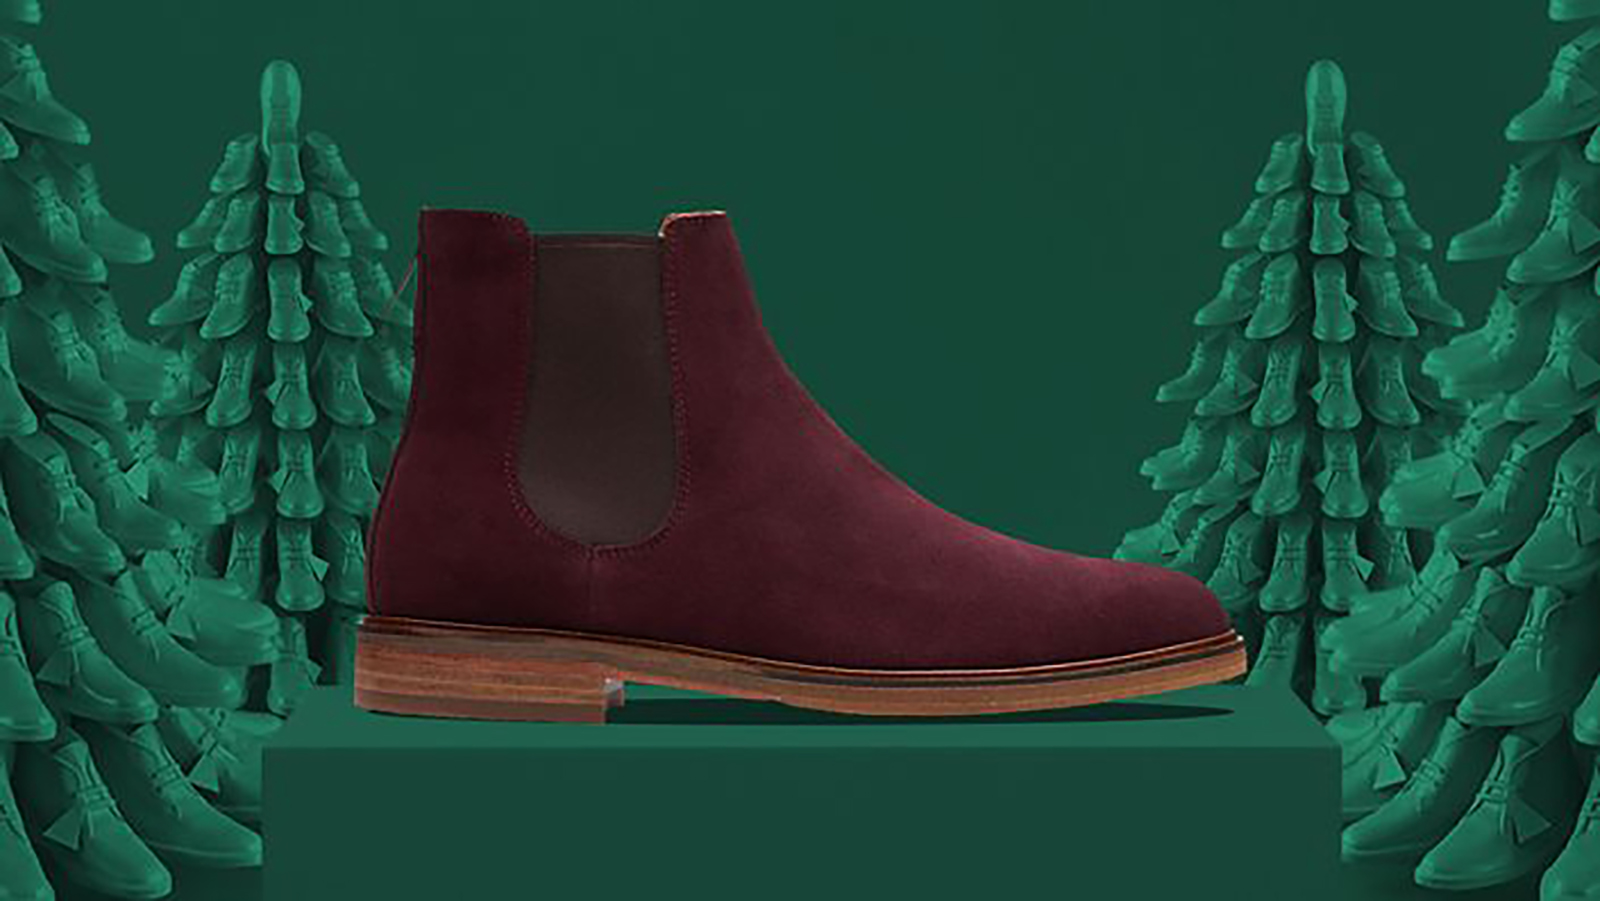 Clarks sale: Take an extra 30% off sale